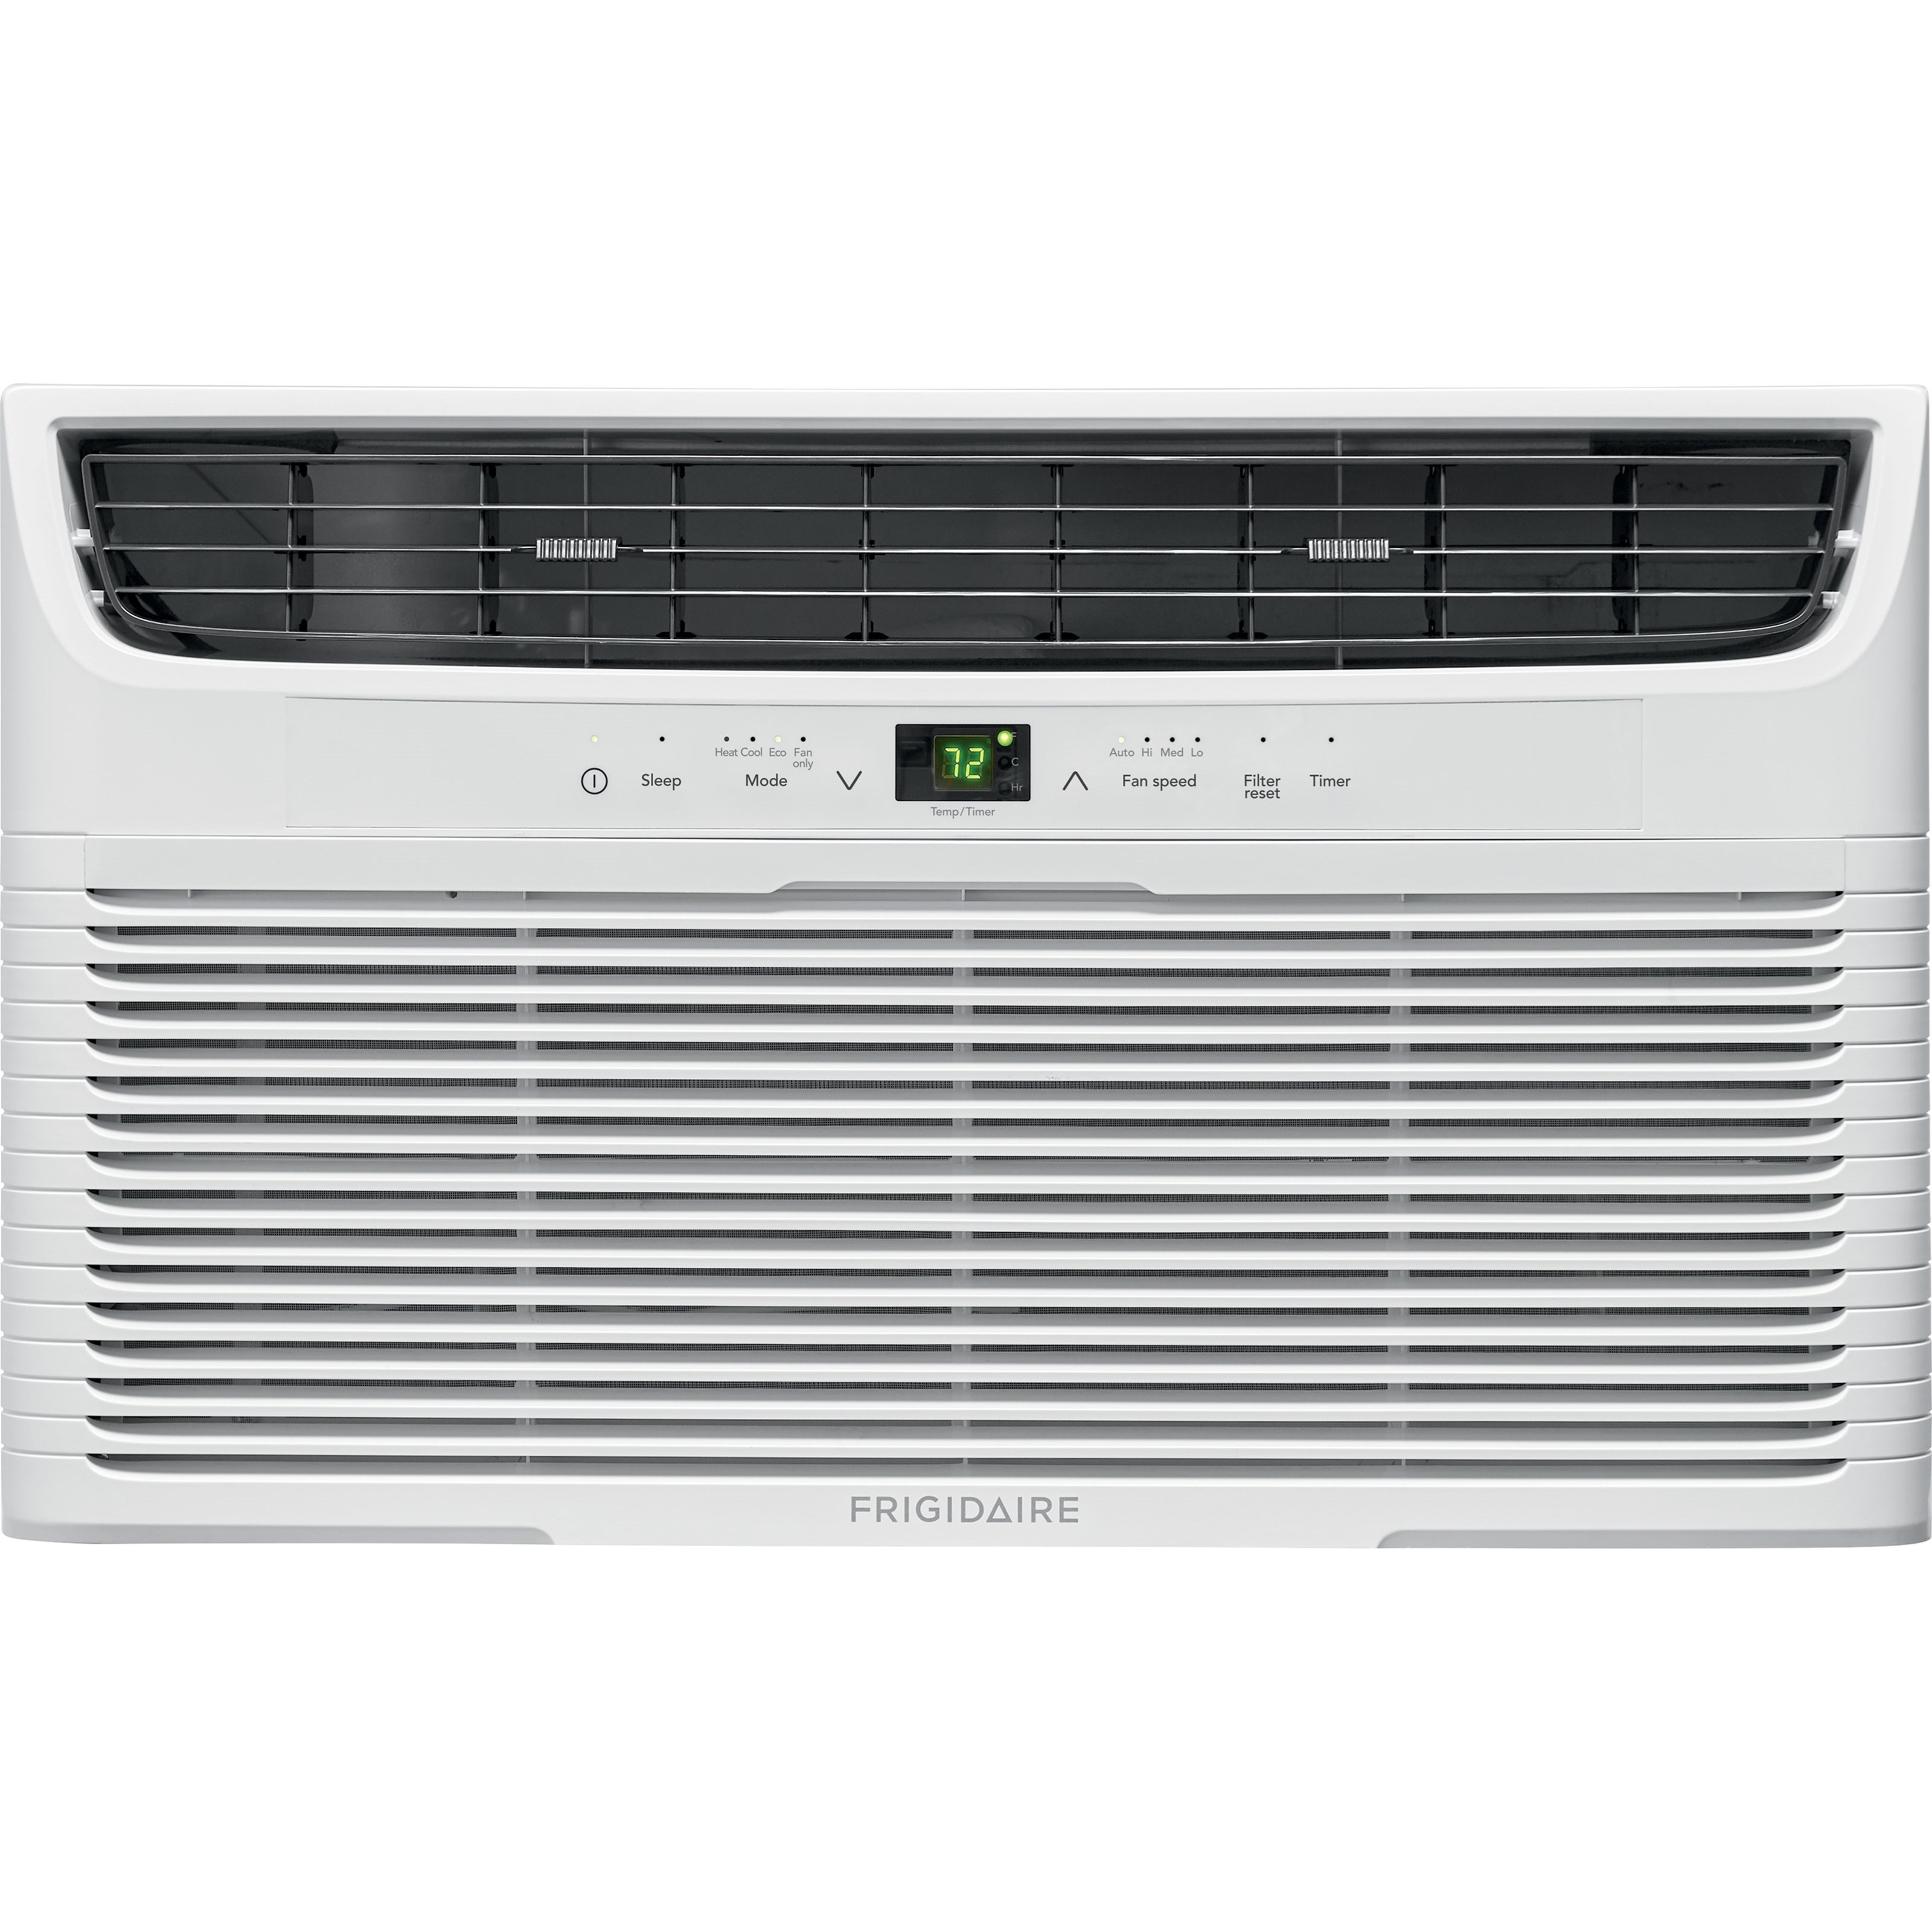 Air Conditioners 8,000 BTU Built-In Room Air Conditioner by Frigidaire at Fisher Home Furnishings